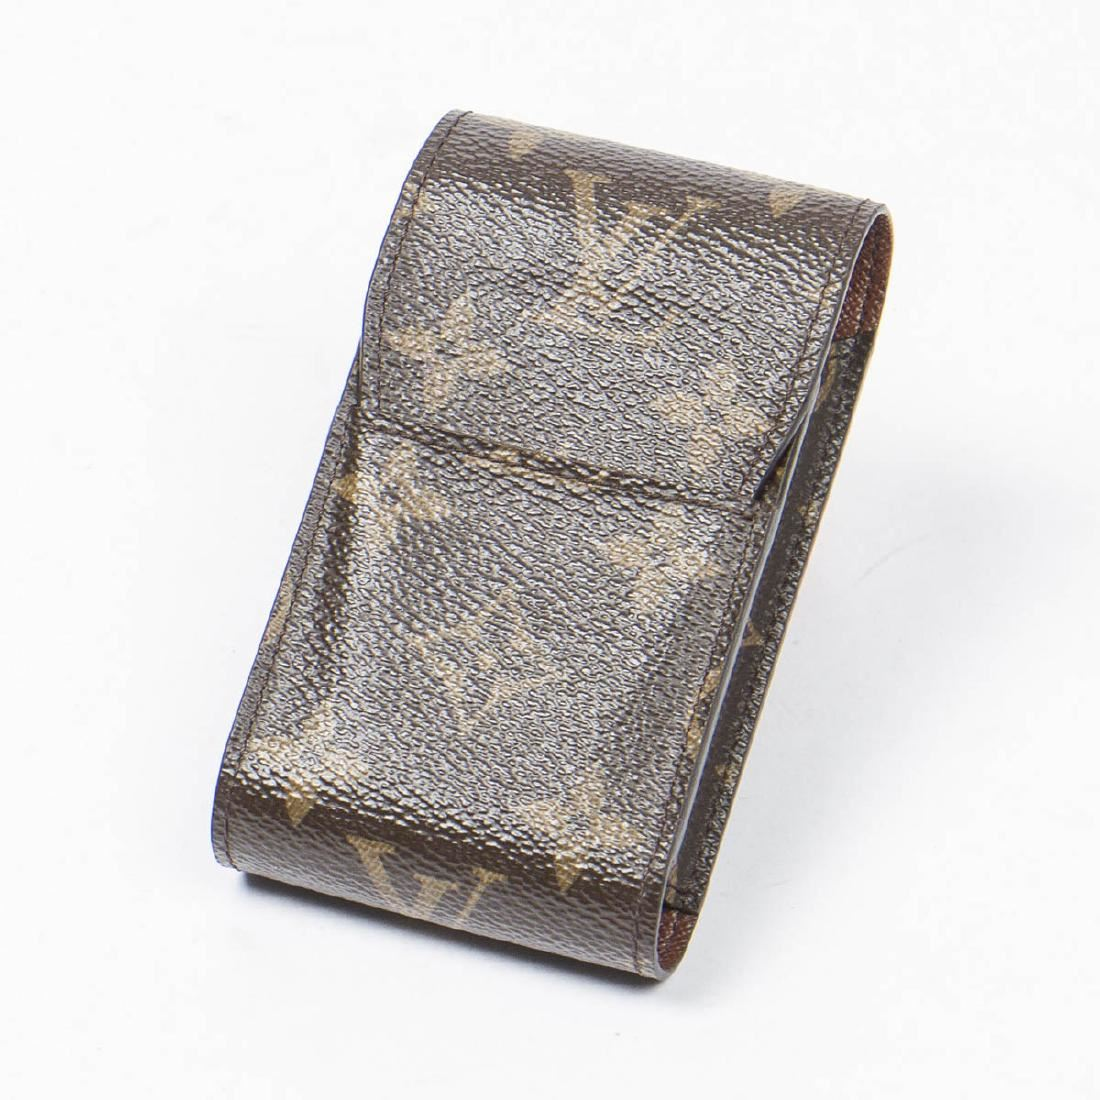 07c93cc5679 Image 1   LOUIS VUITTON Cigarette Case ...